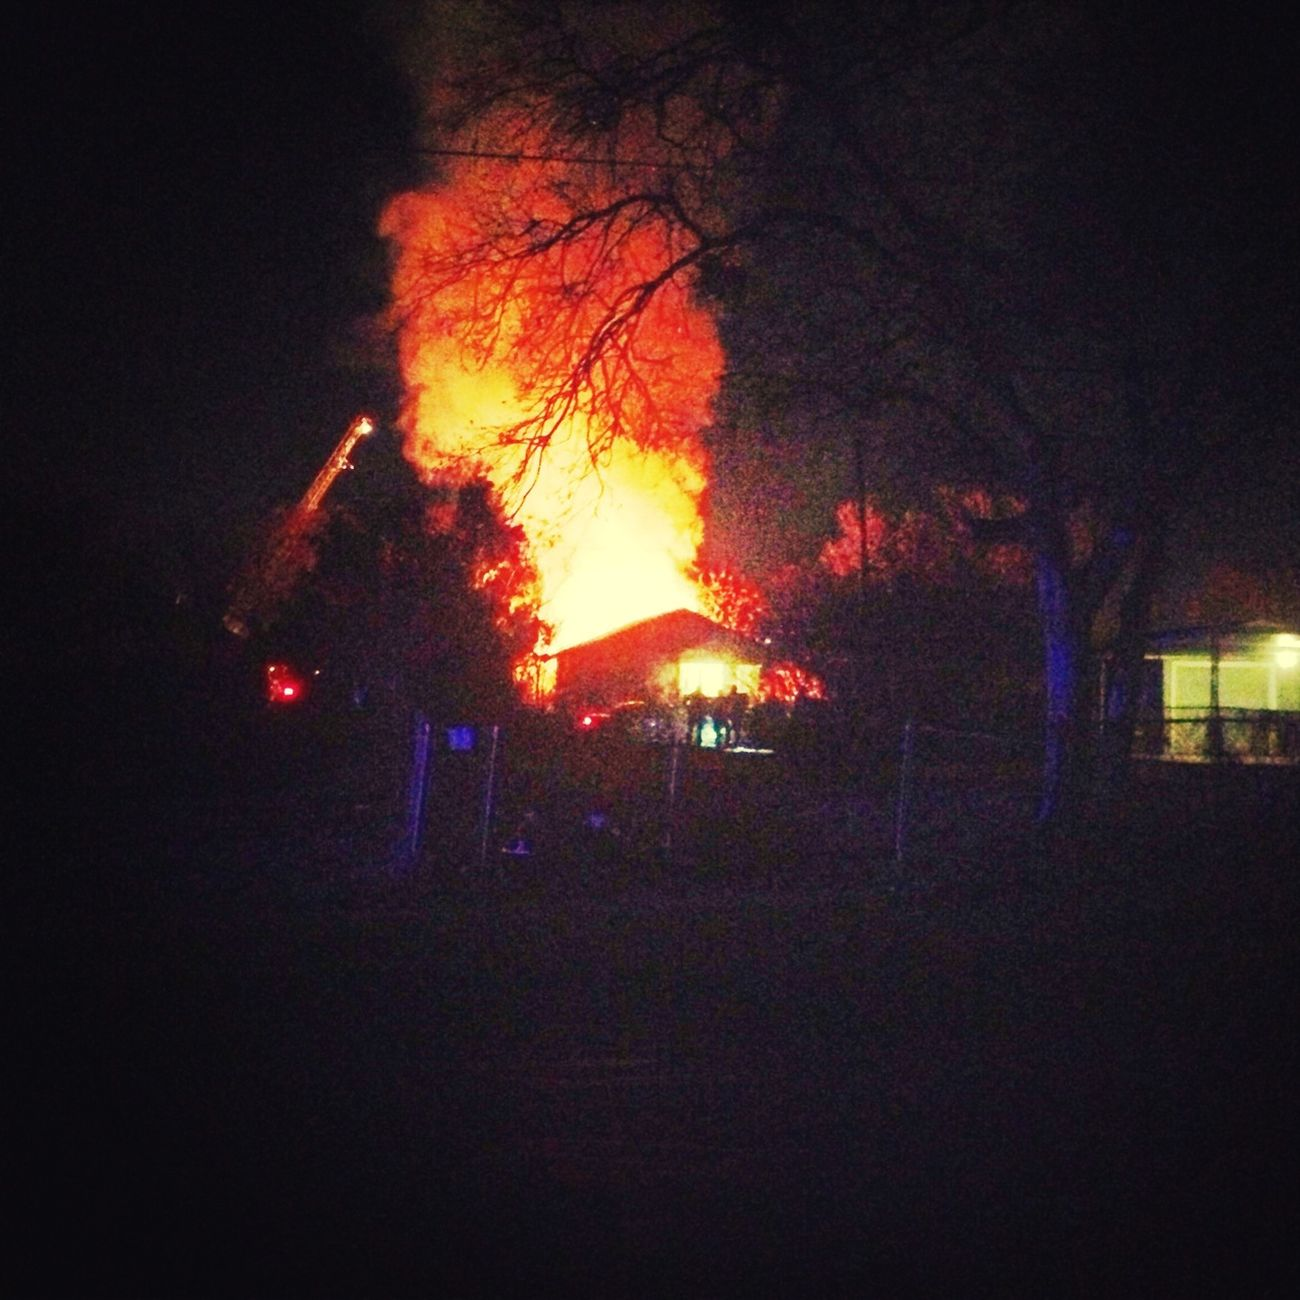 Coming Home To Someones House On Fire :/